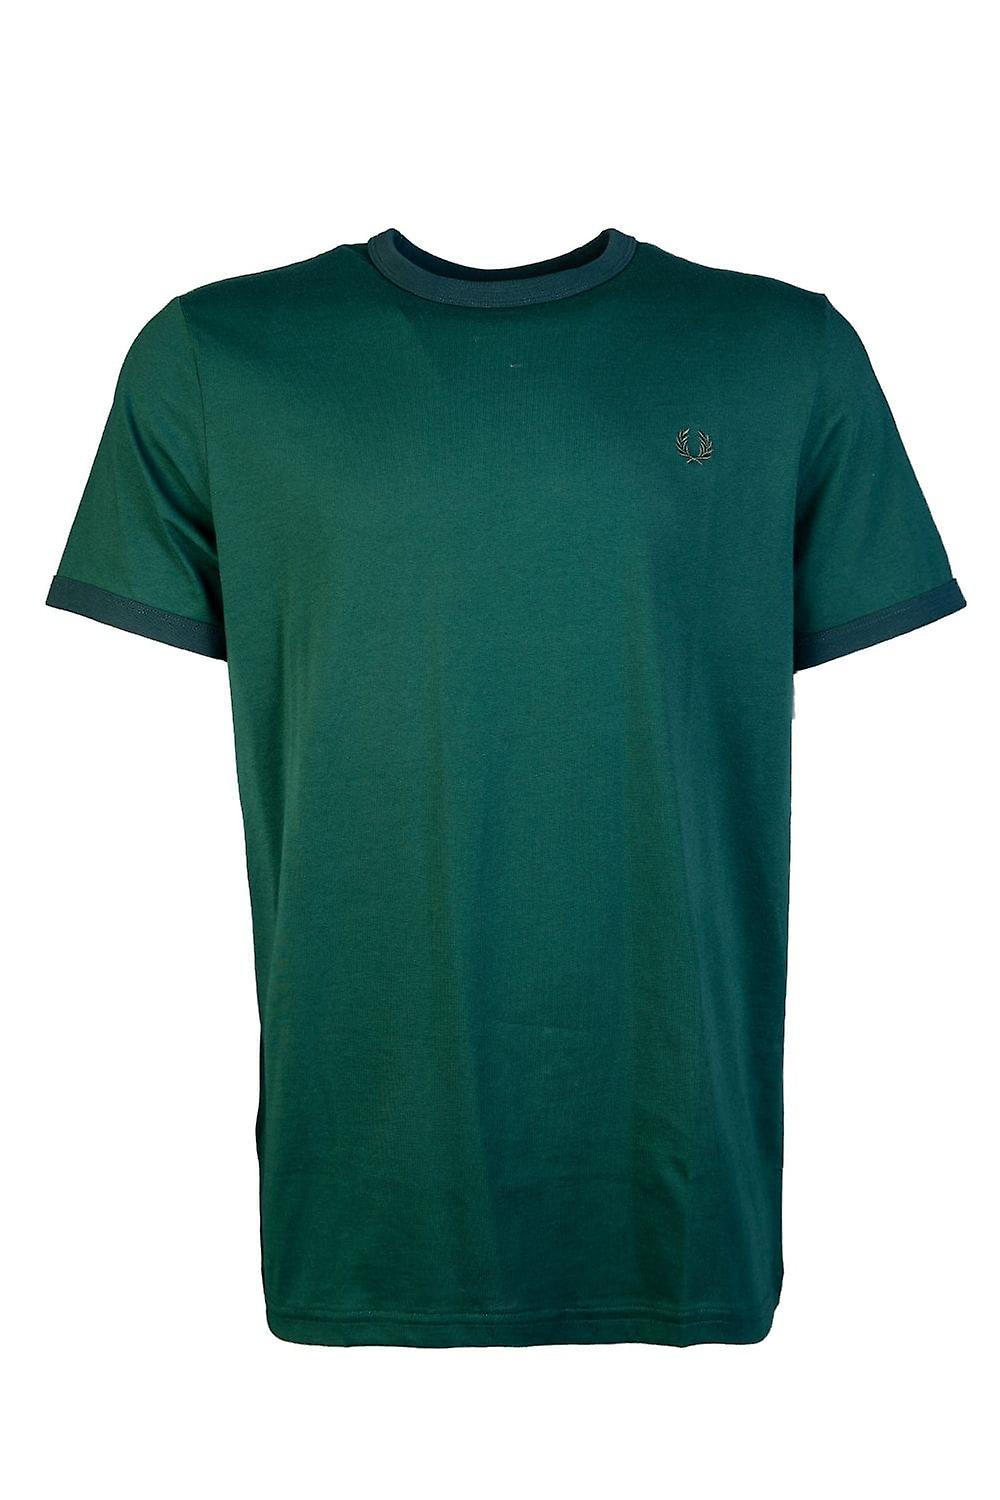 Fred Perry Round Neck T Shirt M3519